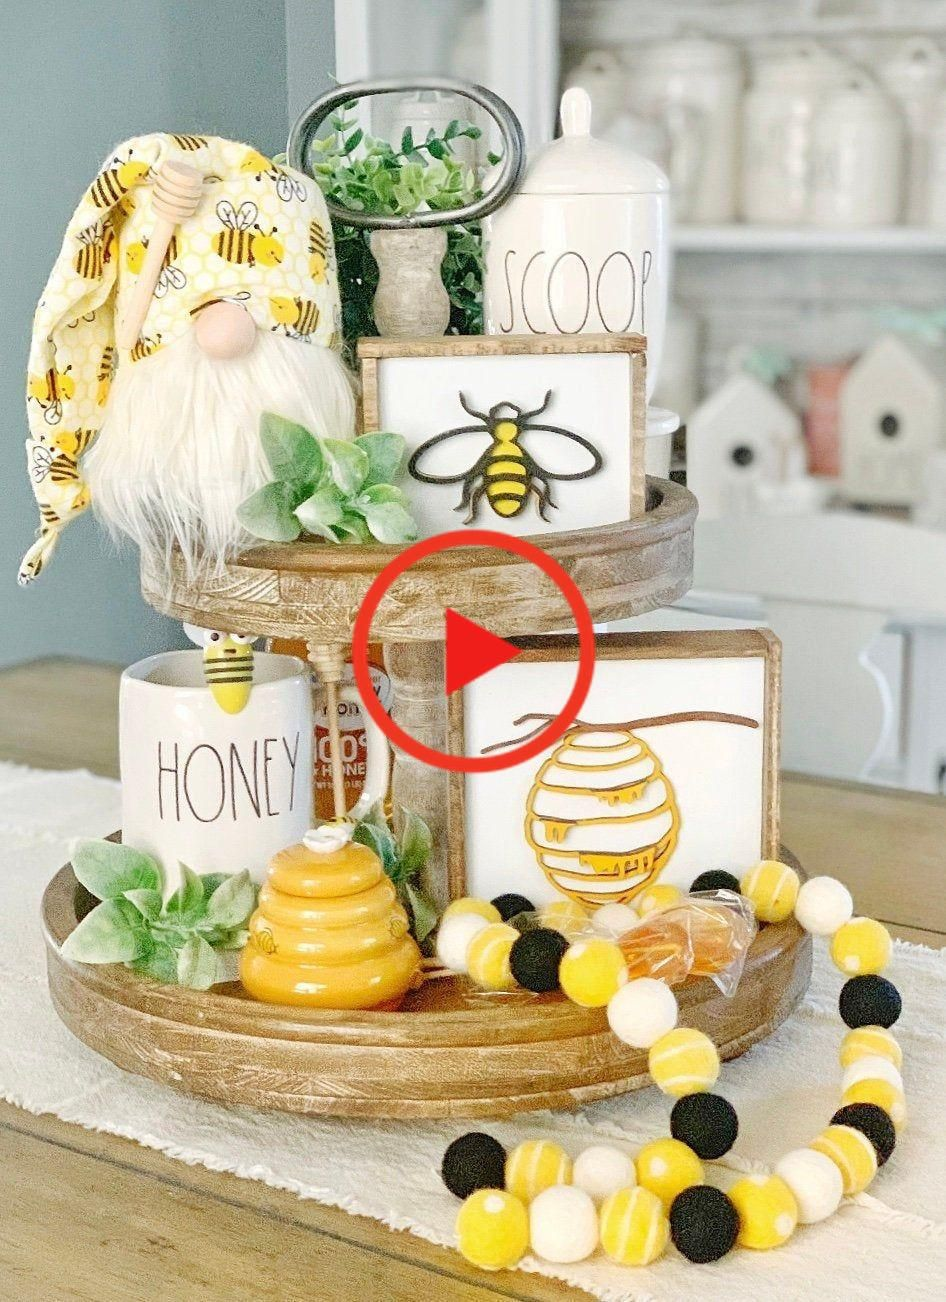 Bee signs / honey signs / bee decor / 3D signs / summer signs / spring signs / tiered tray decor #homedecor